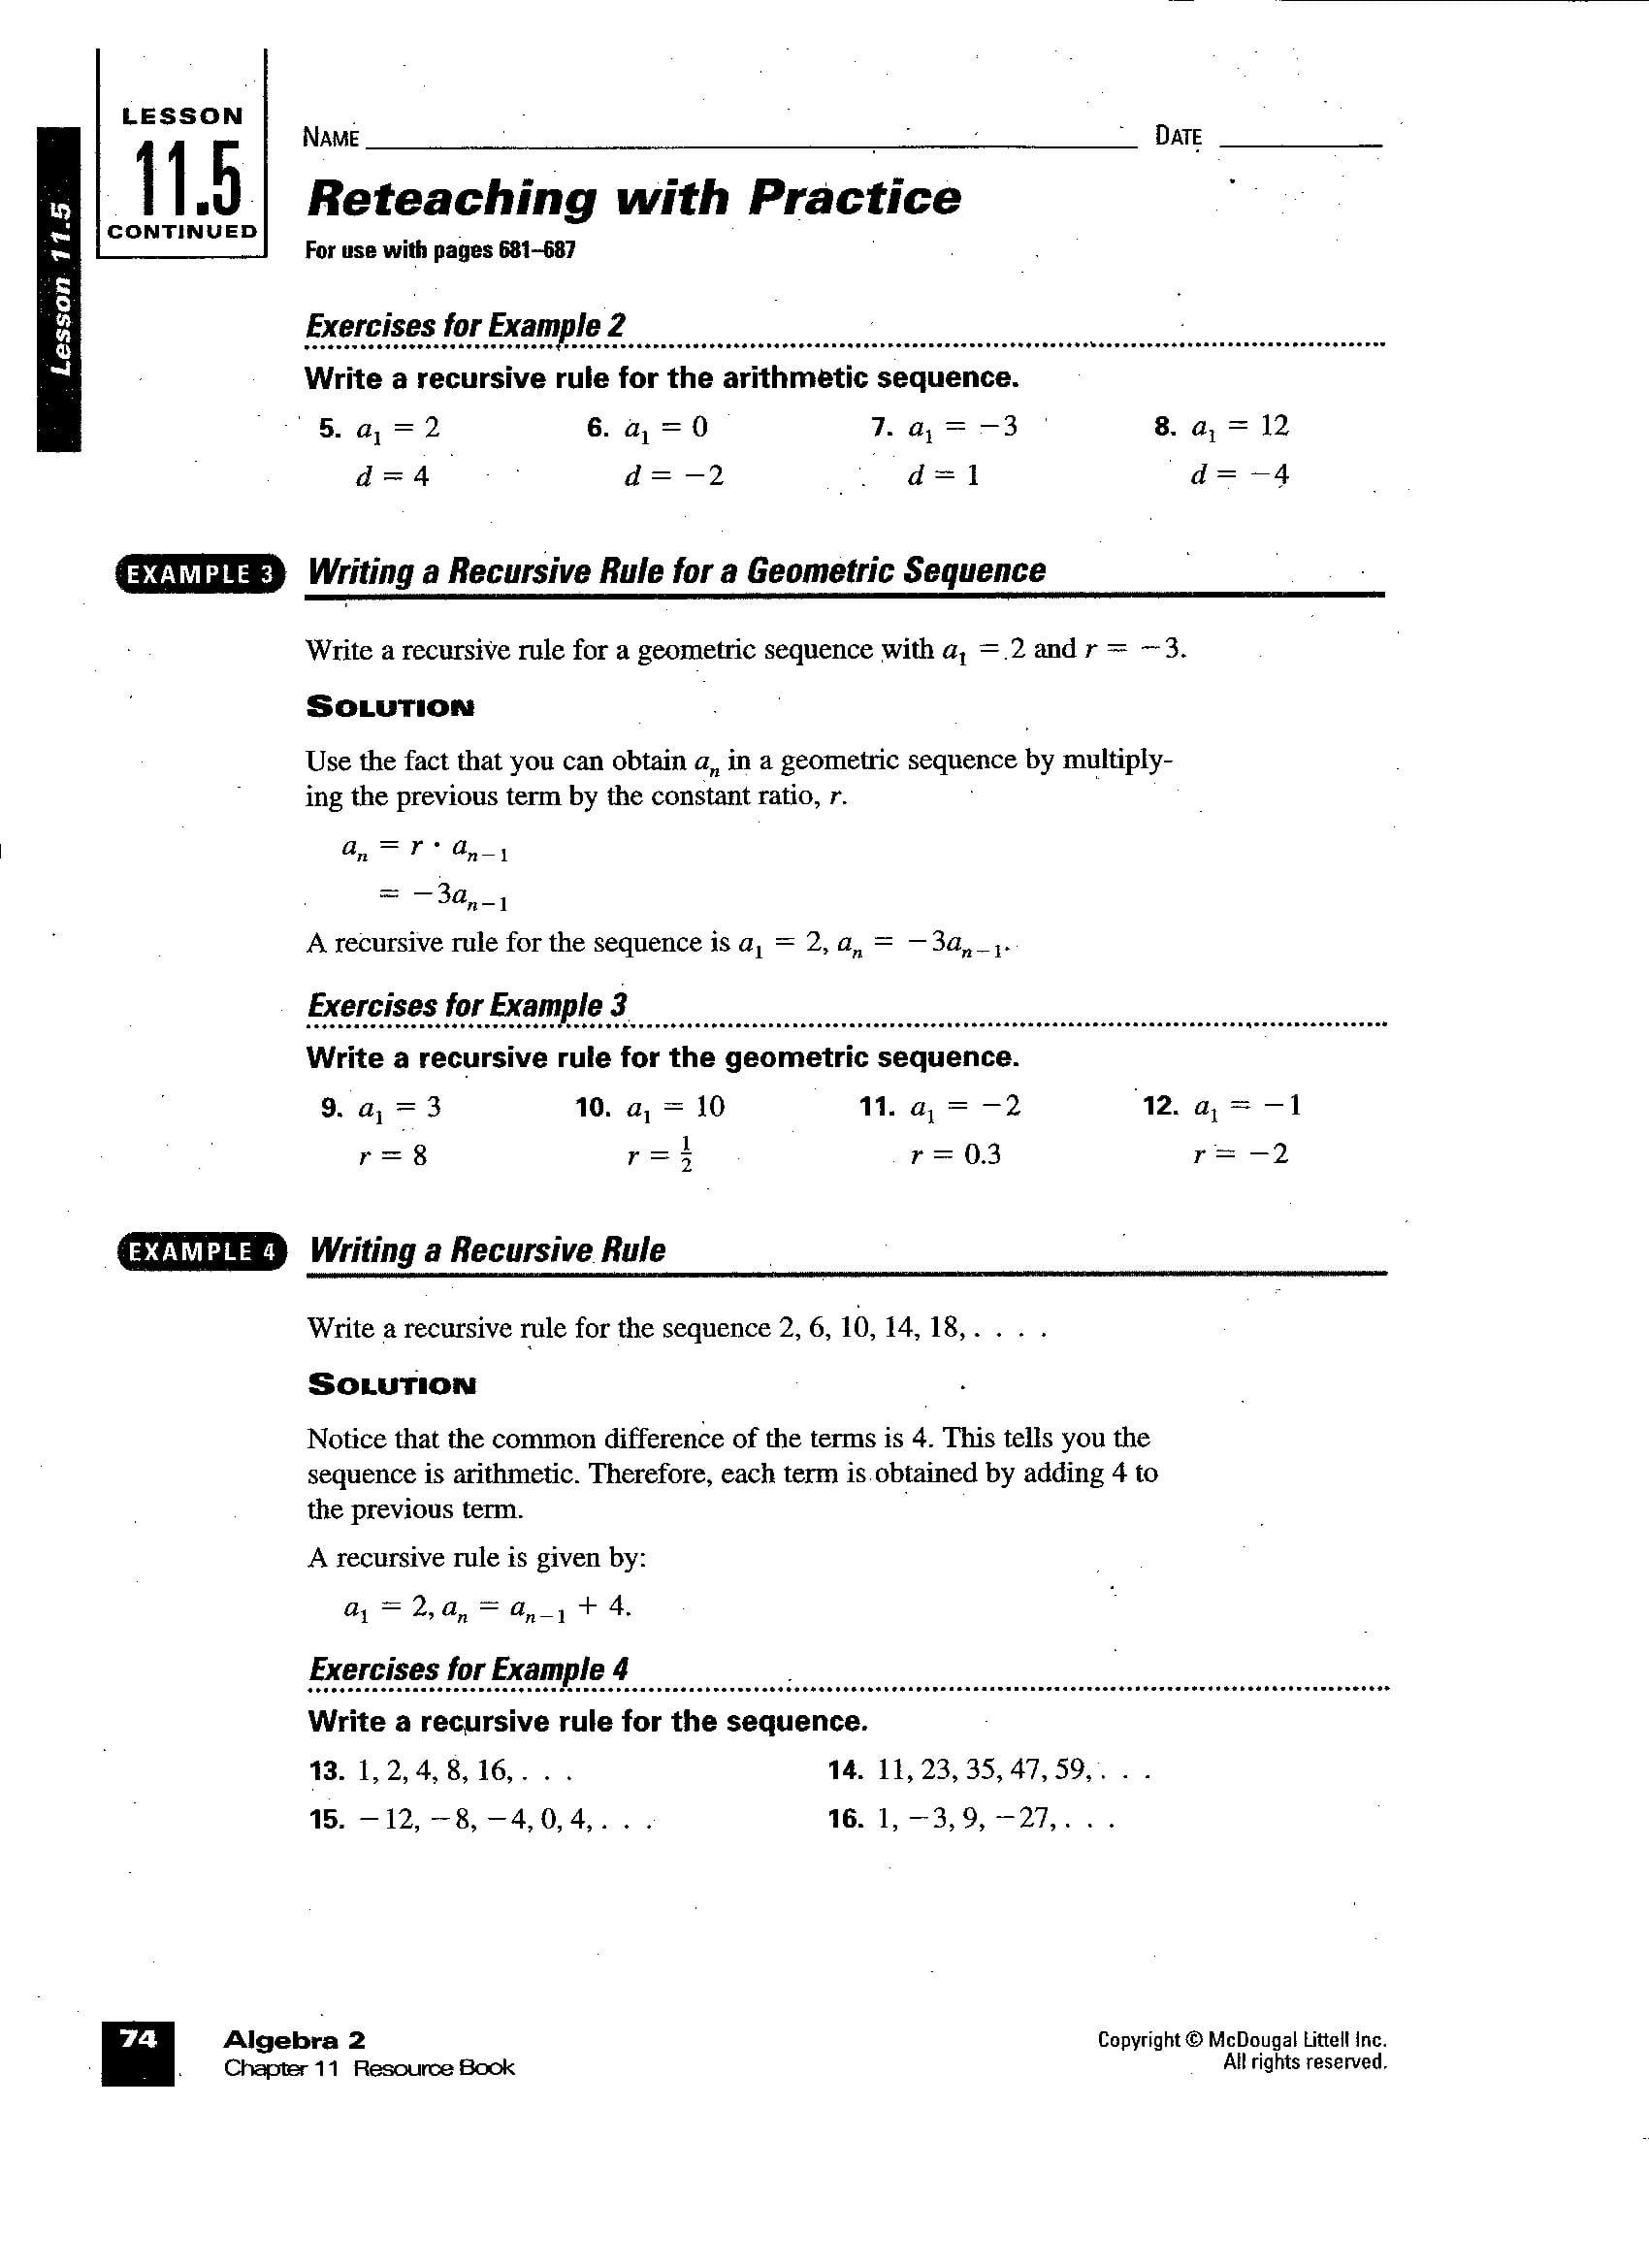 Arithmetic Sequence Worksheet Algebra 1 Db Excel